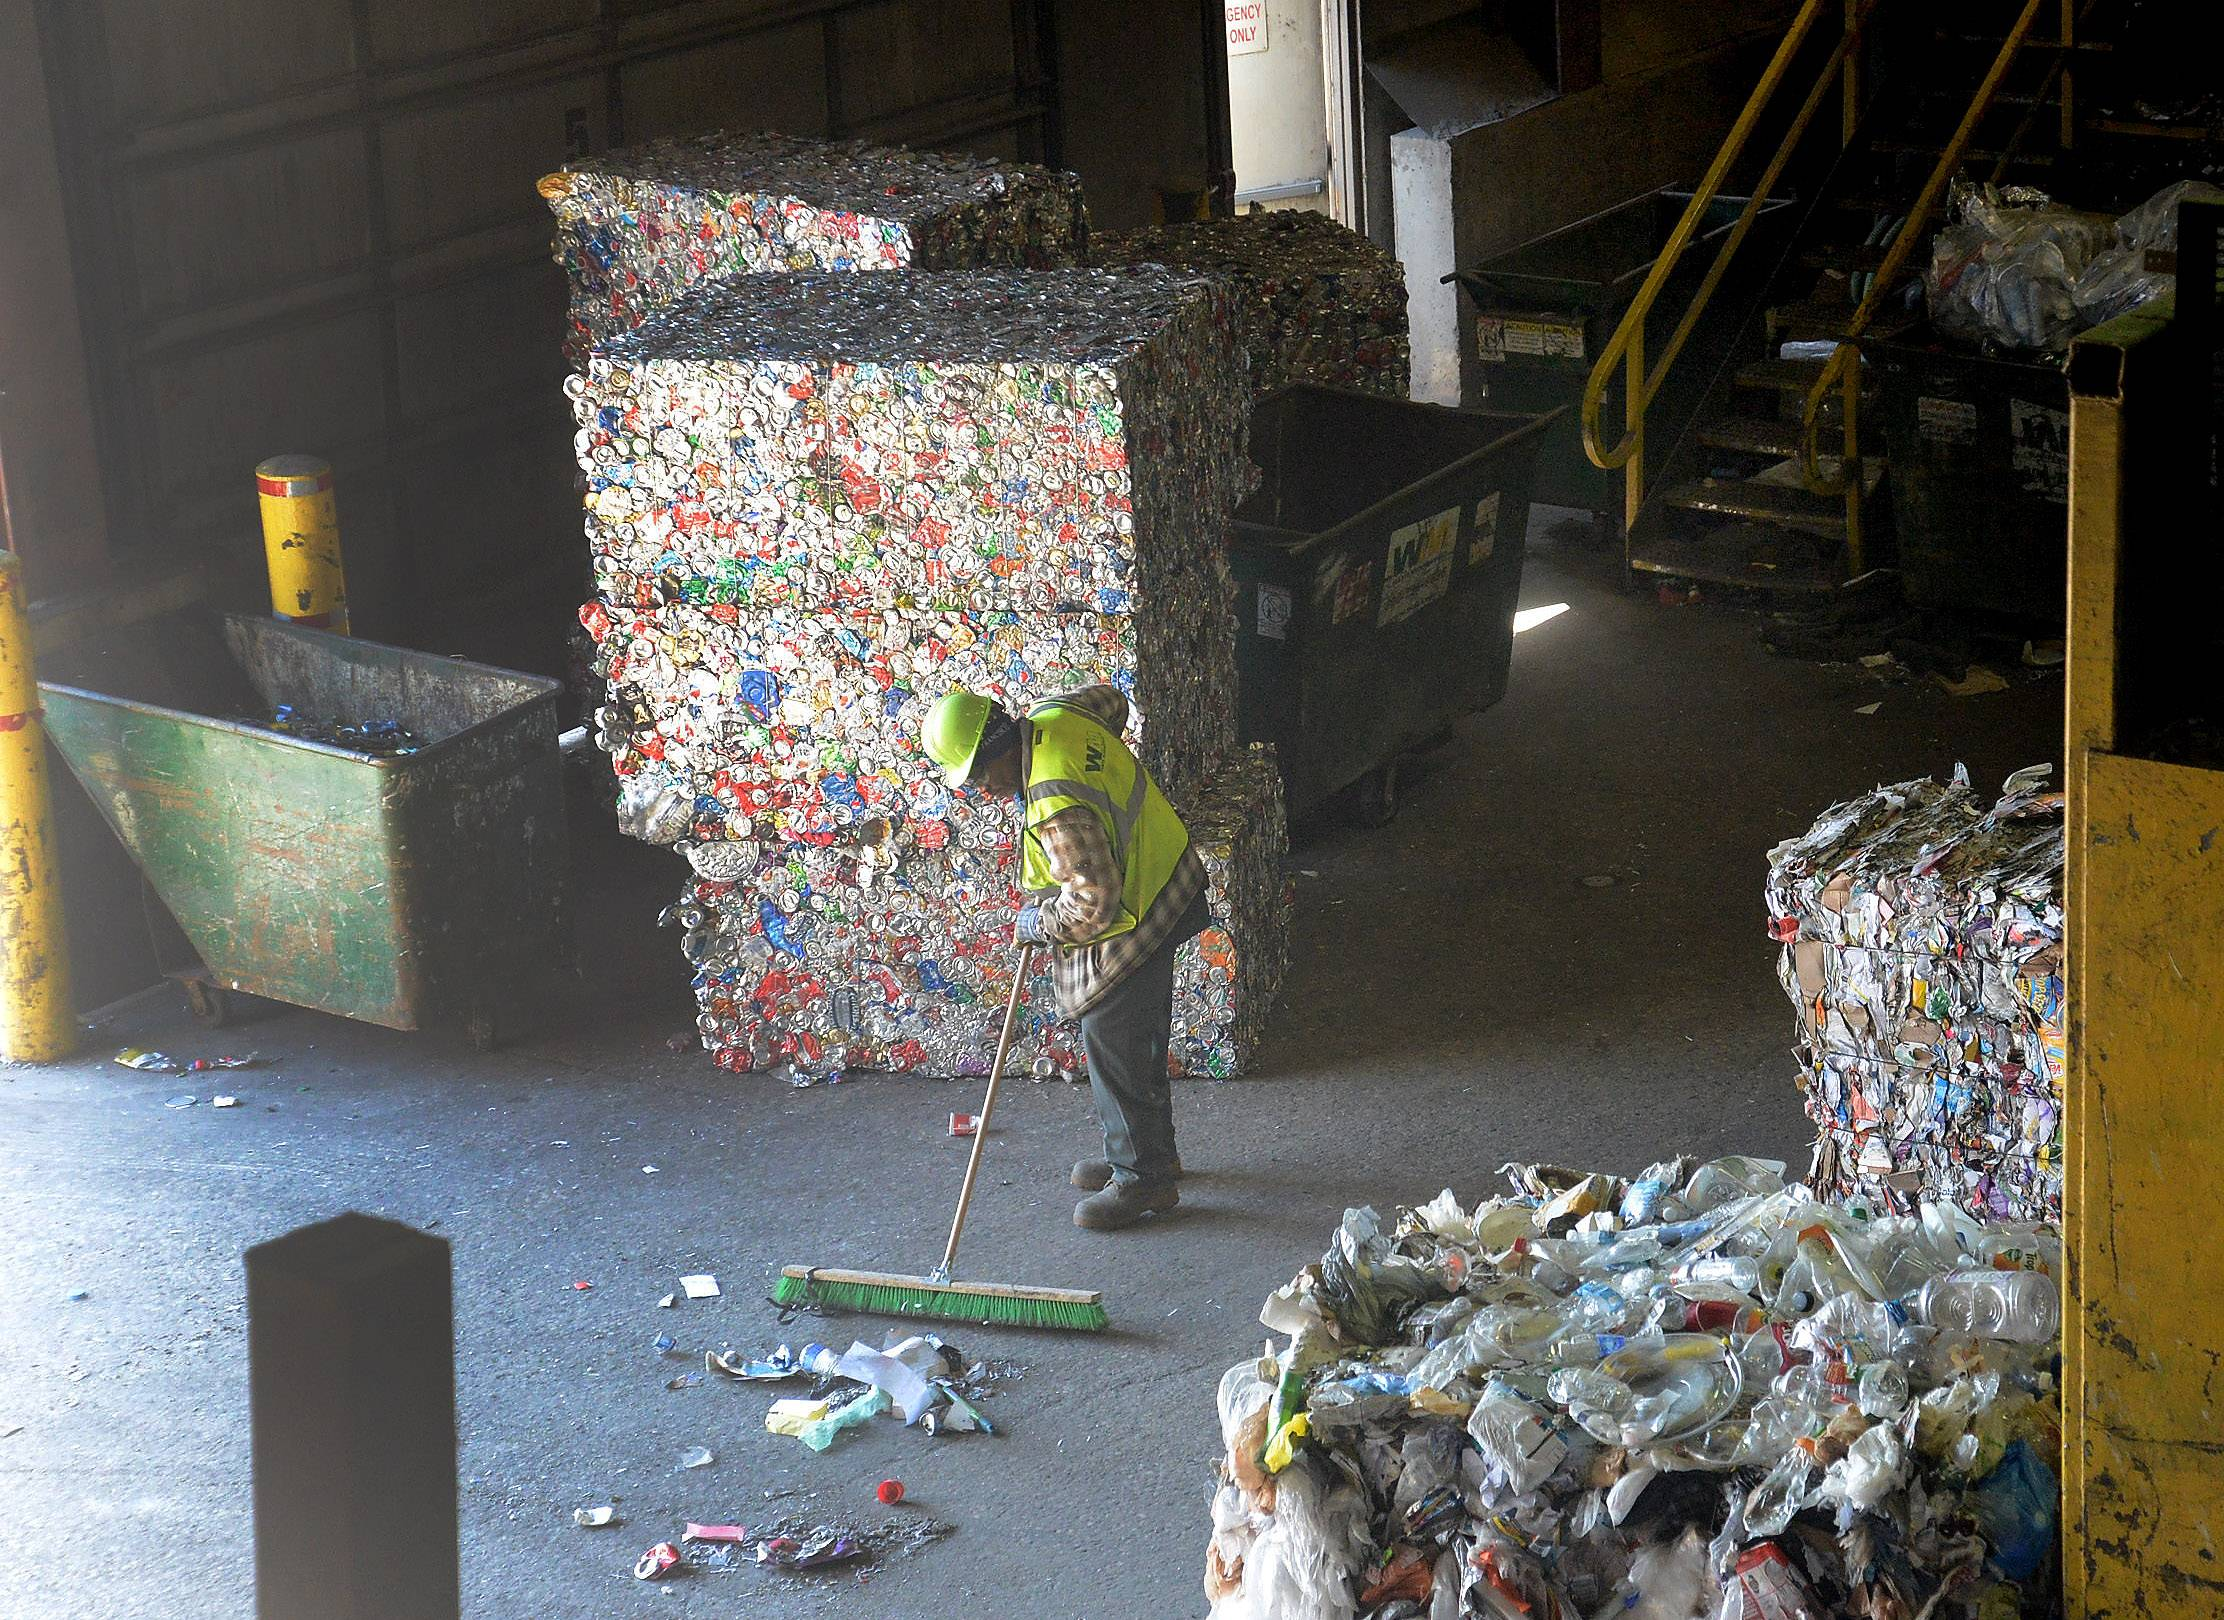 A man sweeps up at the Waste Management Recycle America Lake County Processing Facility in Grayslake.